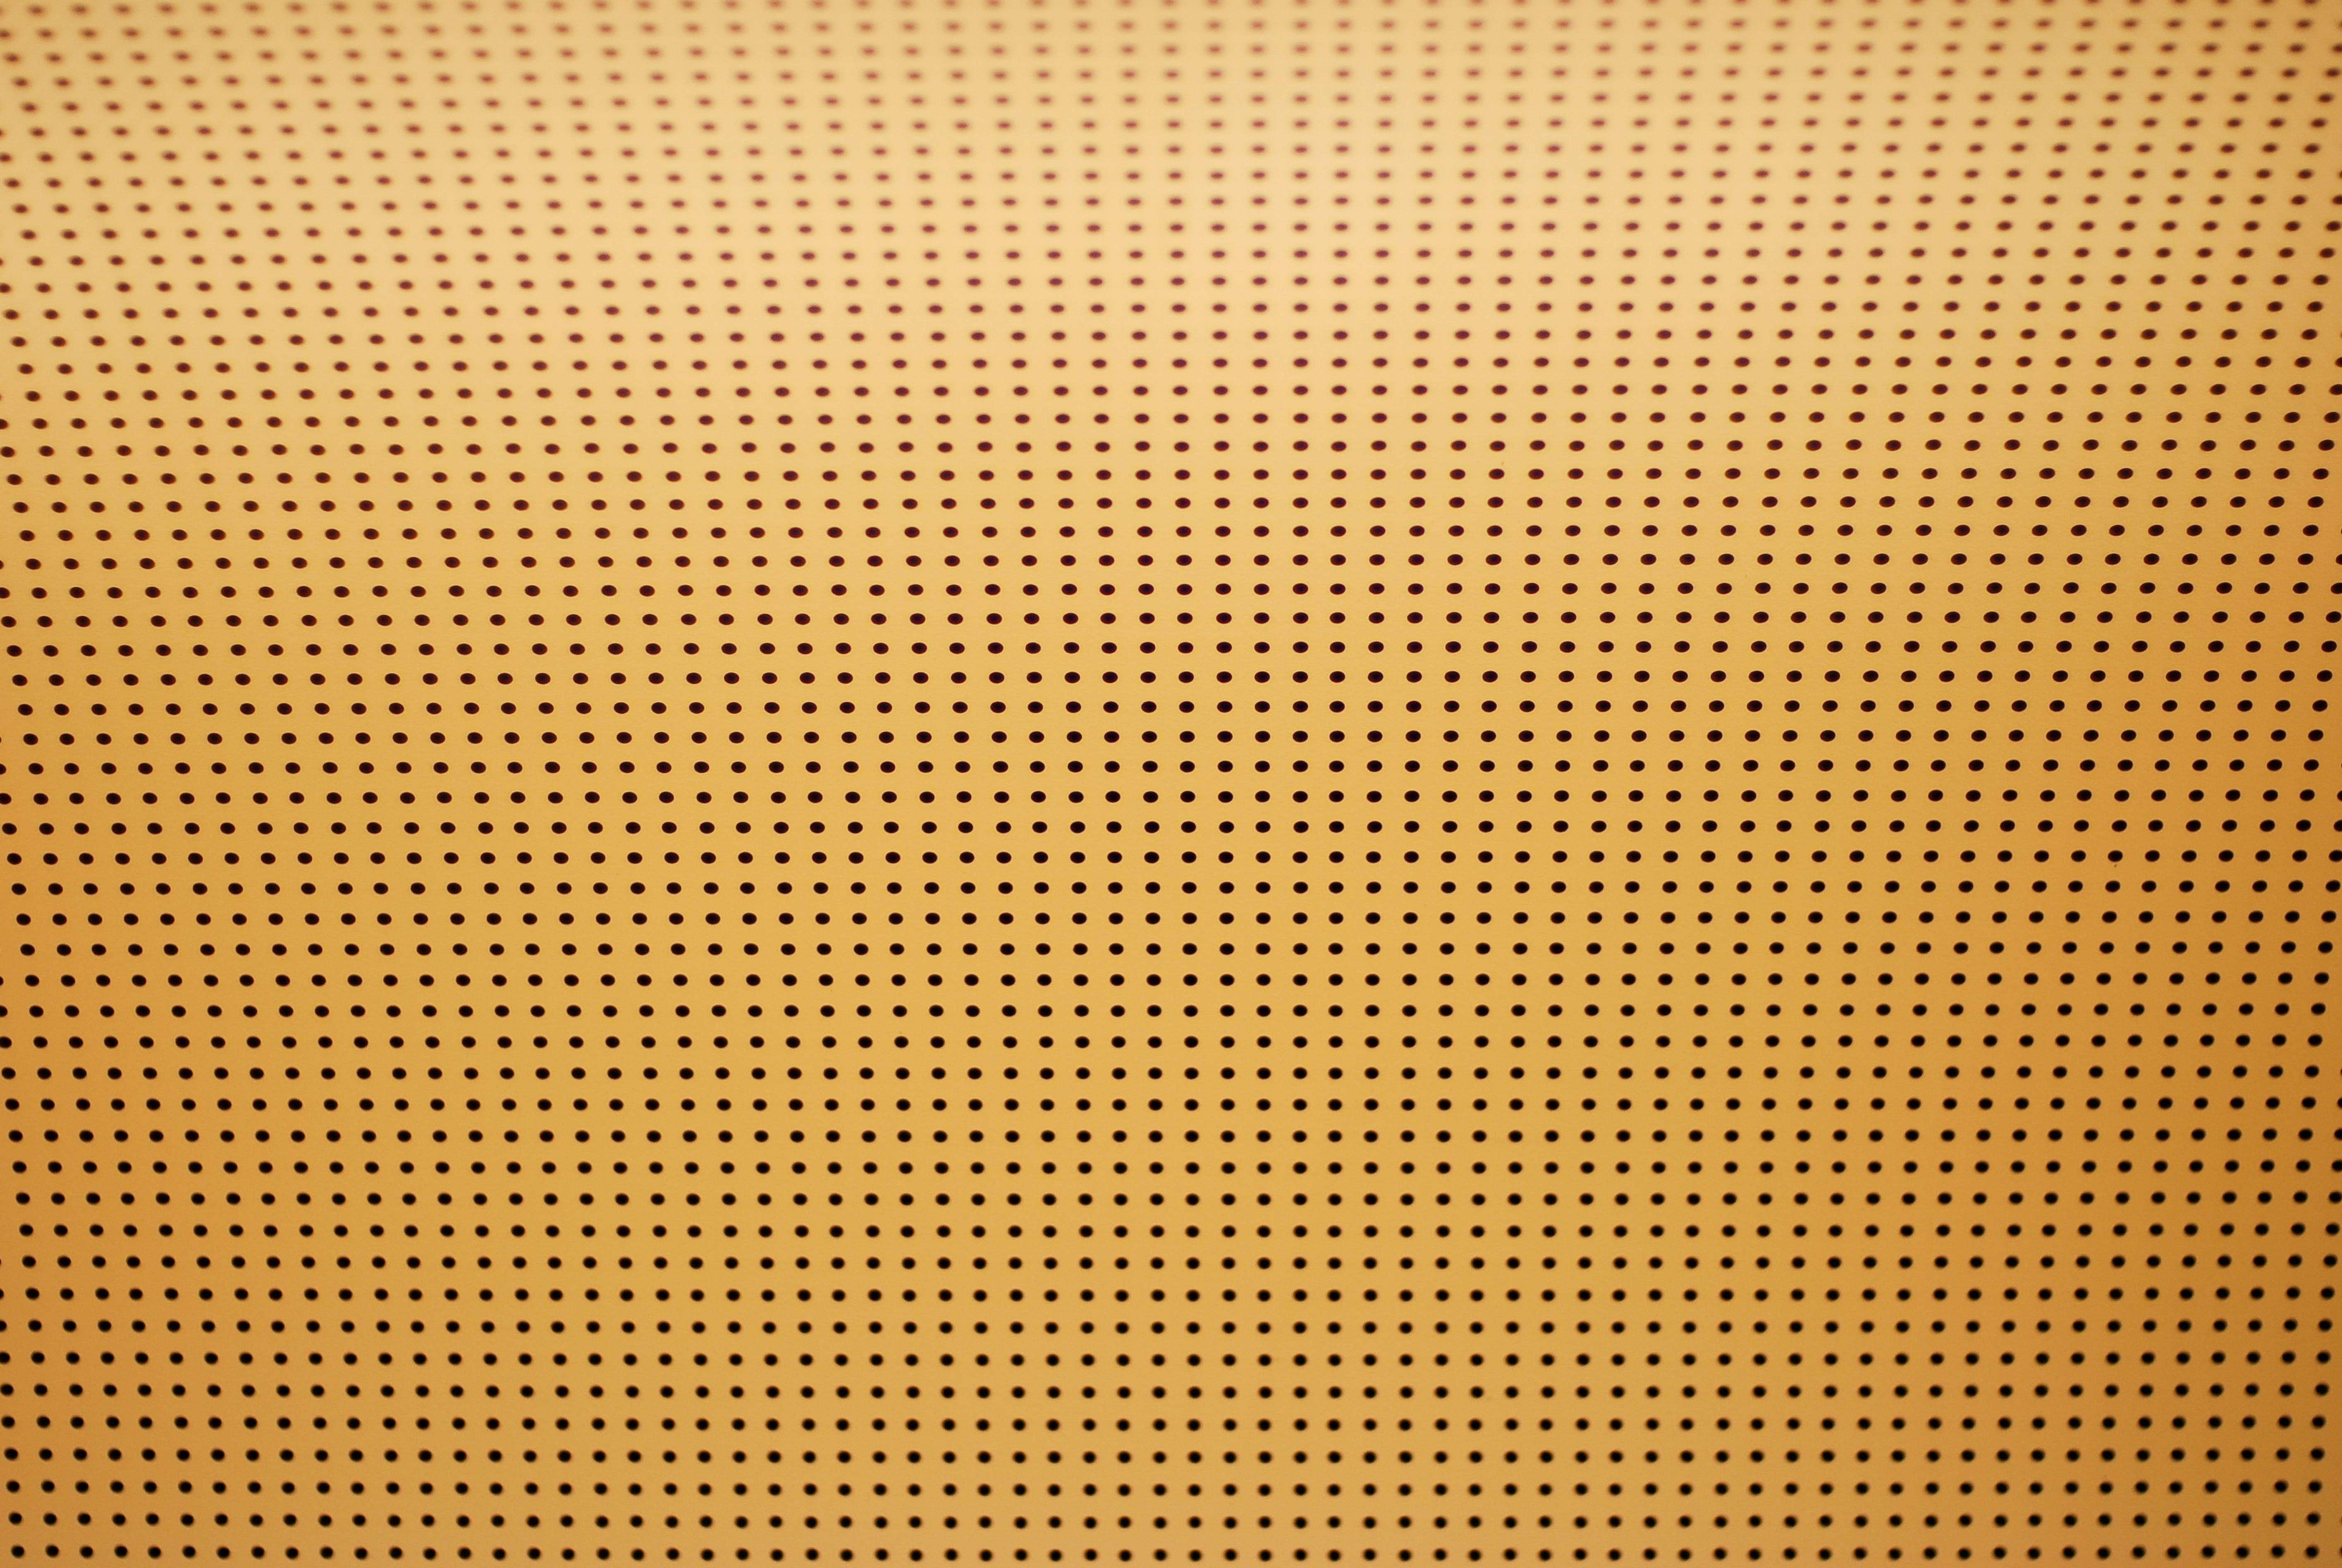 Perforated ceiling yellow background